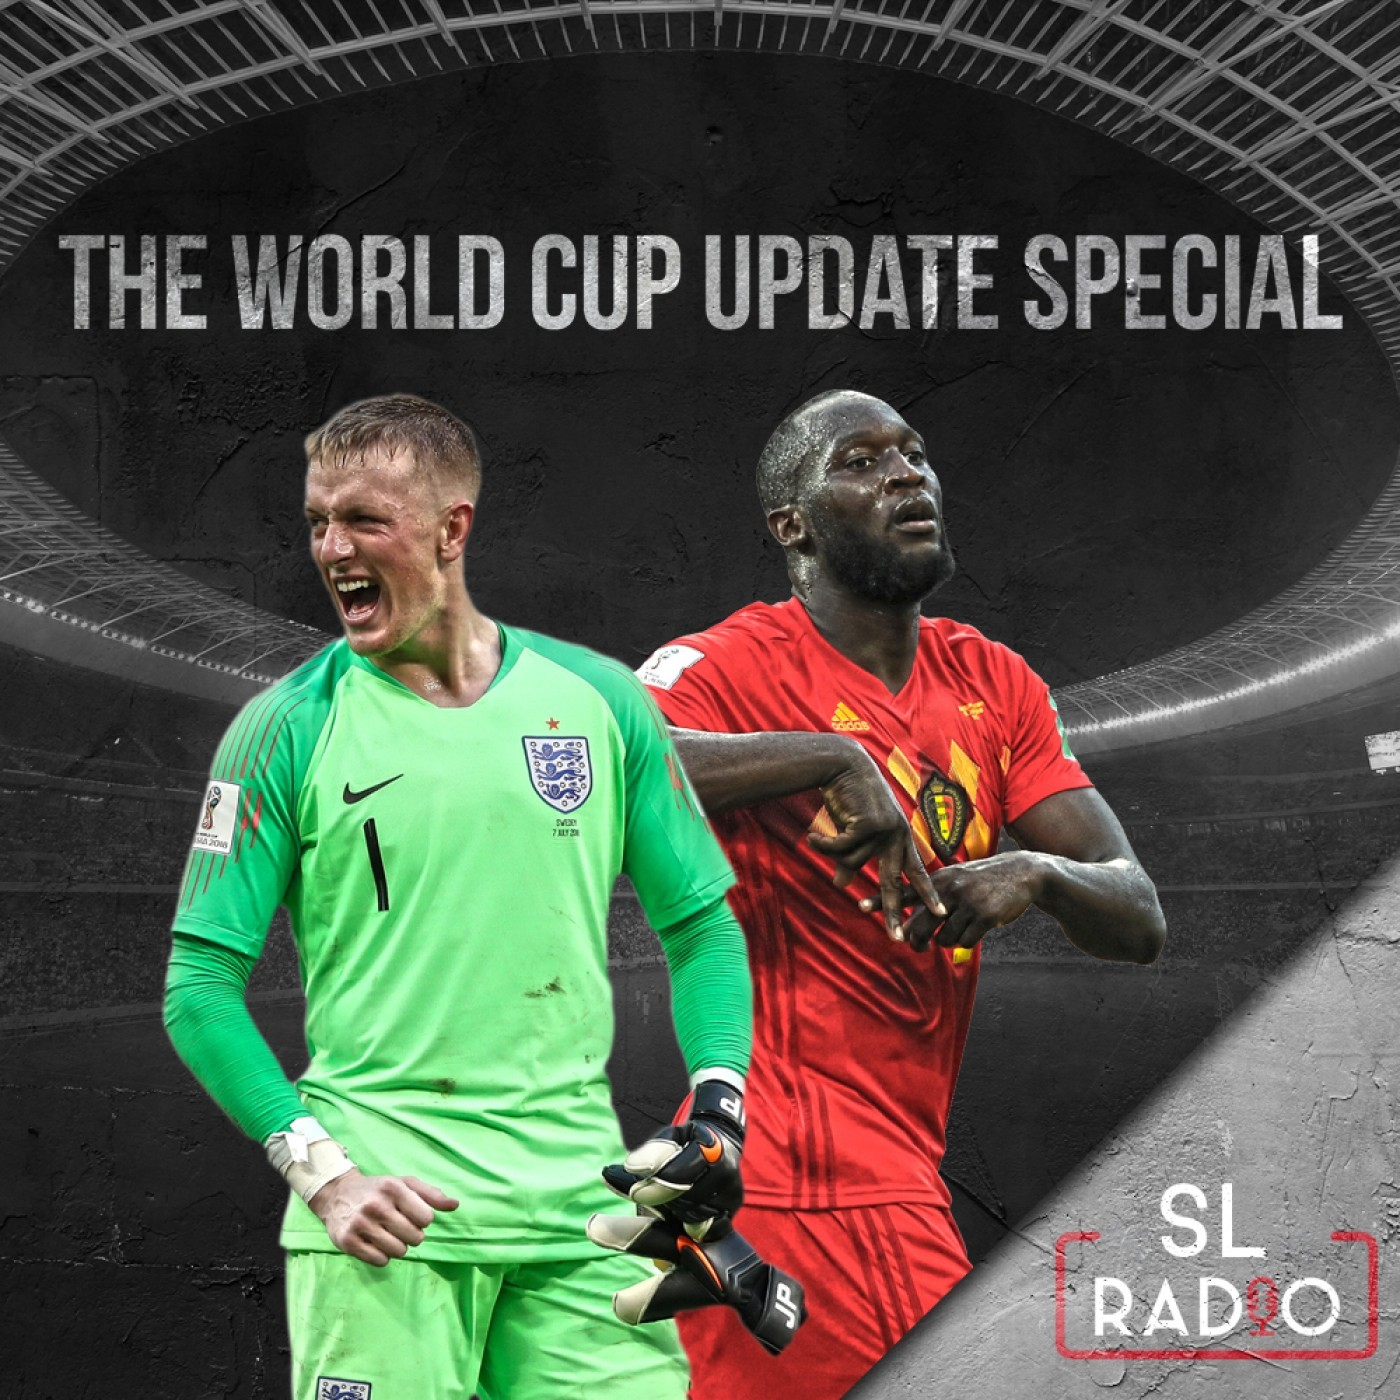 Special Update - Pickford Optimistic & Joe Crann On If It Is 'Coming Home'